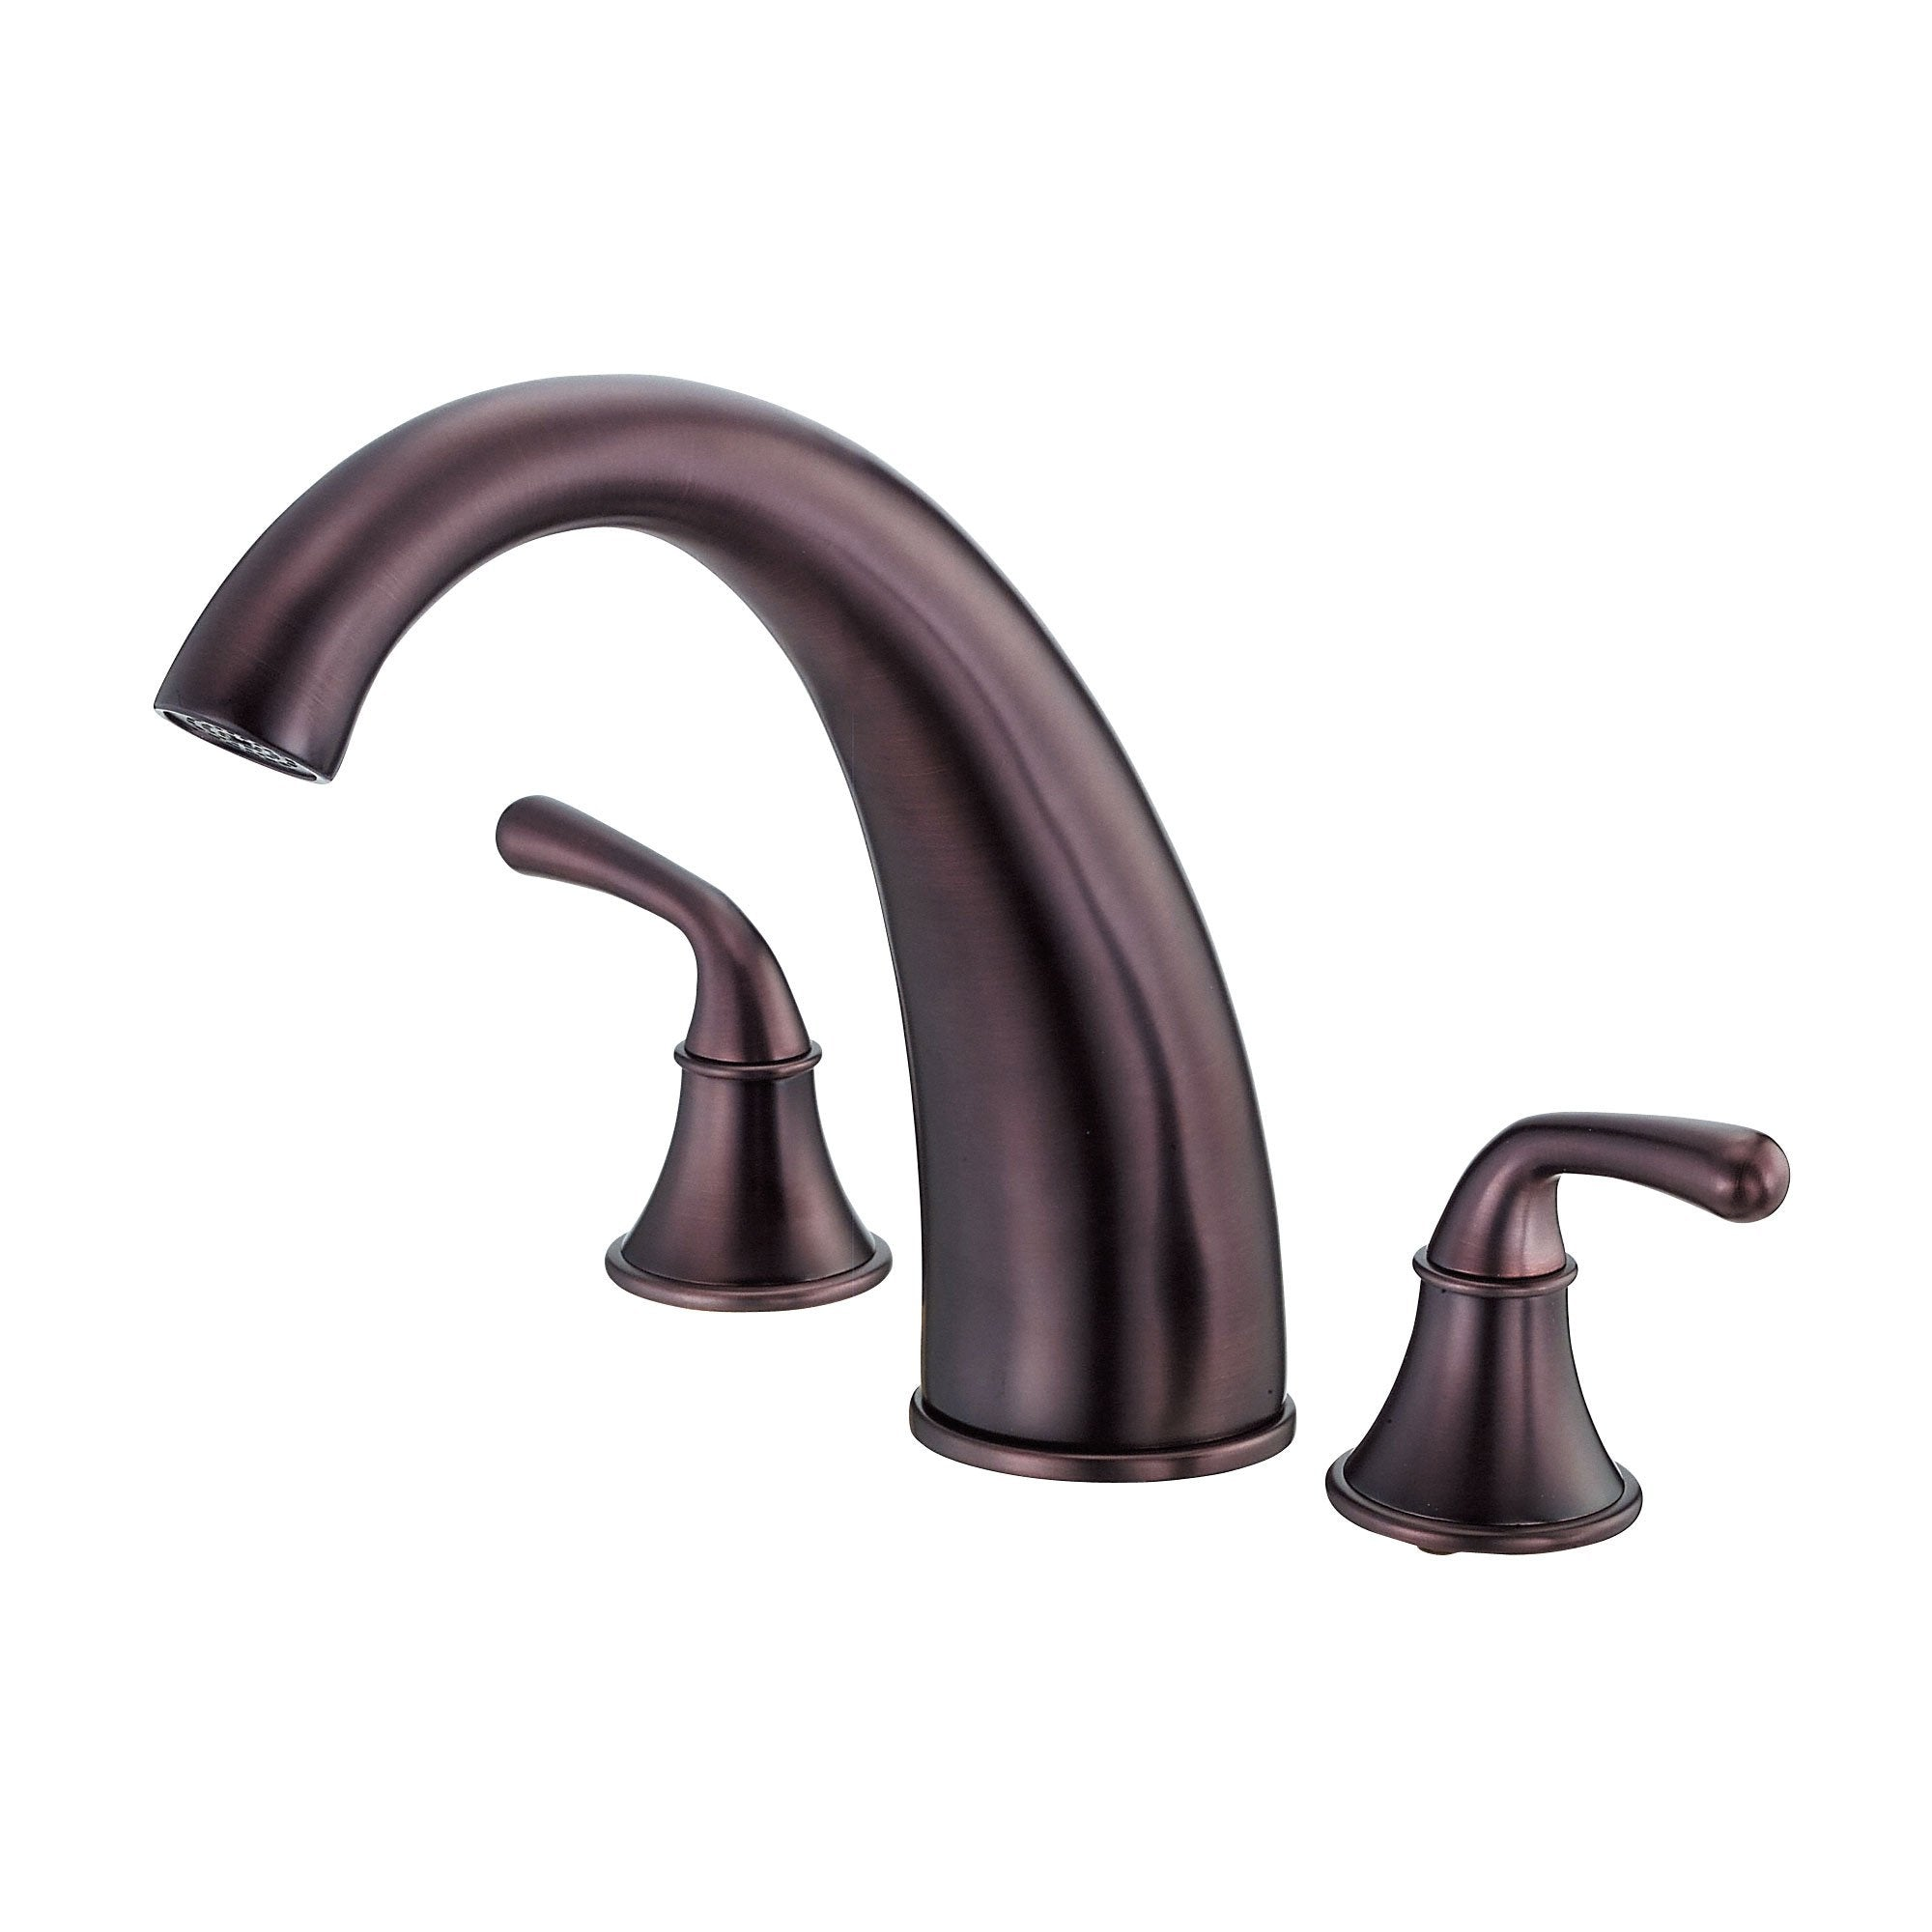 Danze Bannockburn Oil Rubbed Bronze HiArch Spout Widespread Roman Tub Faucet INCLUDES Rough-in Valve